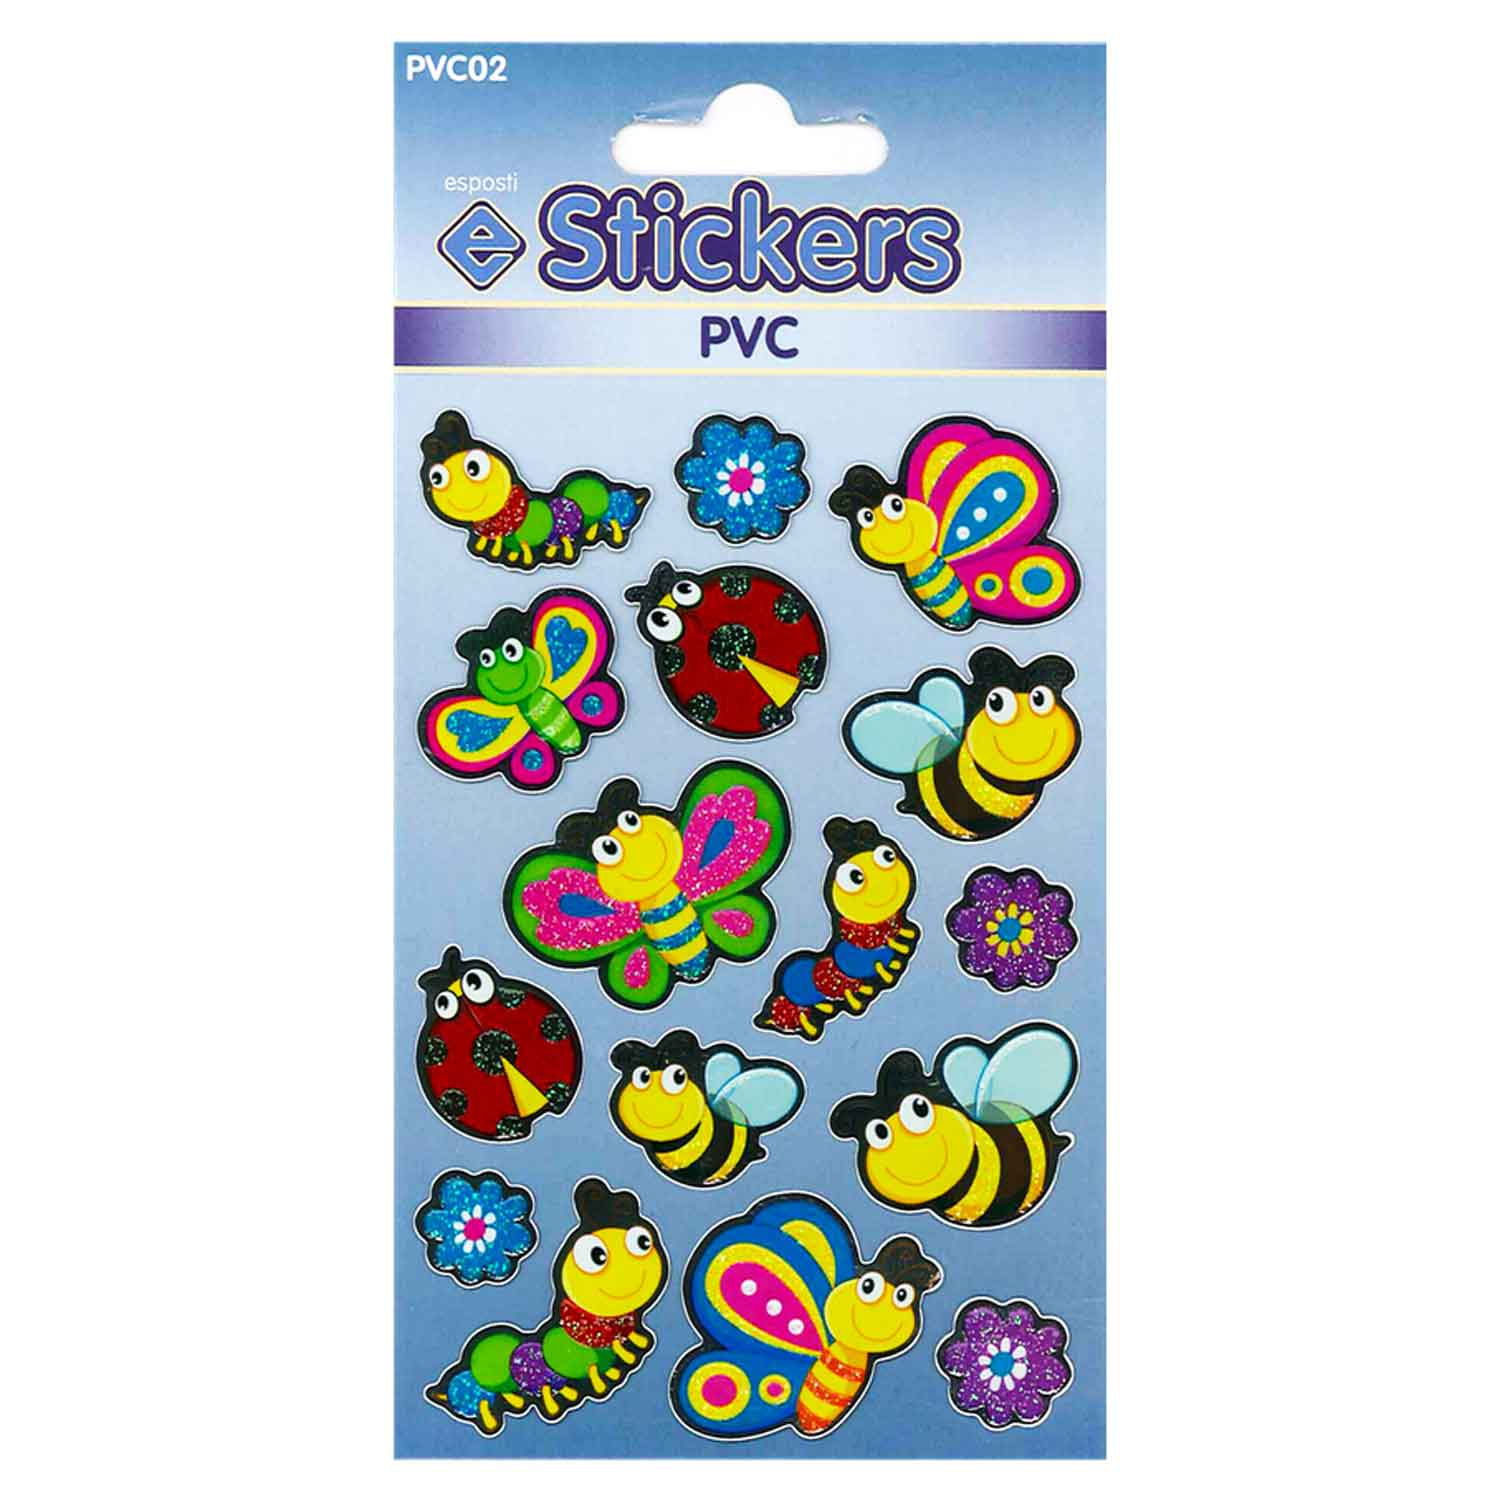 Esposti PVC Bugs Self Adhesive Novelty Stickers - Pack of 10